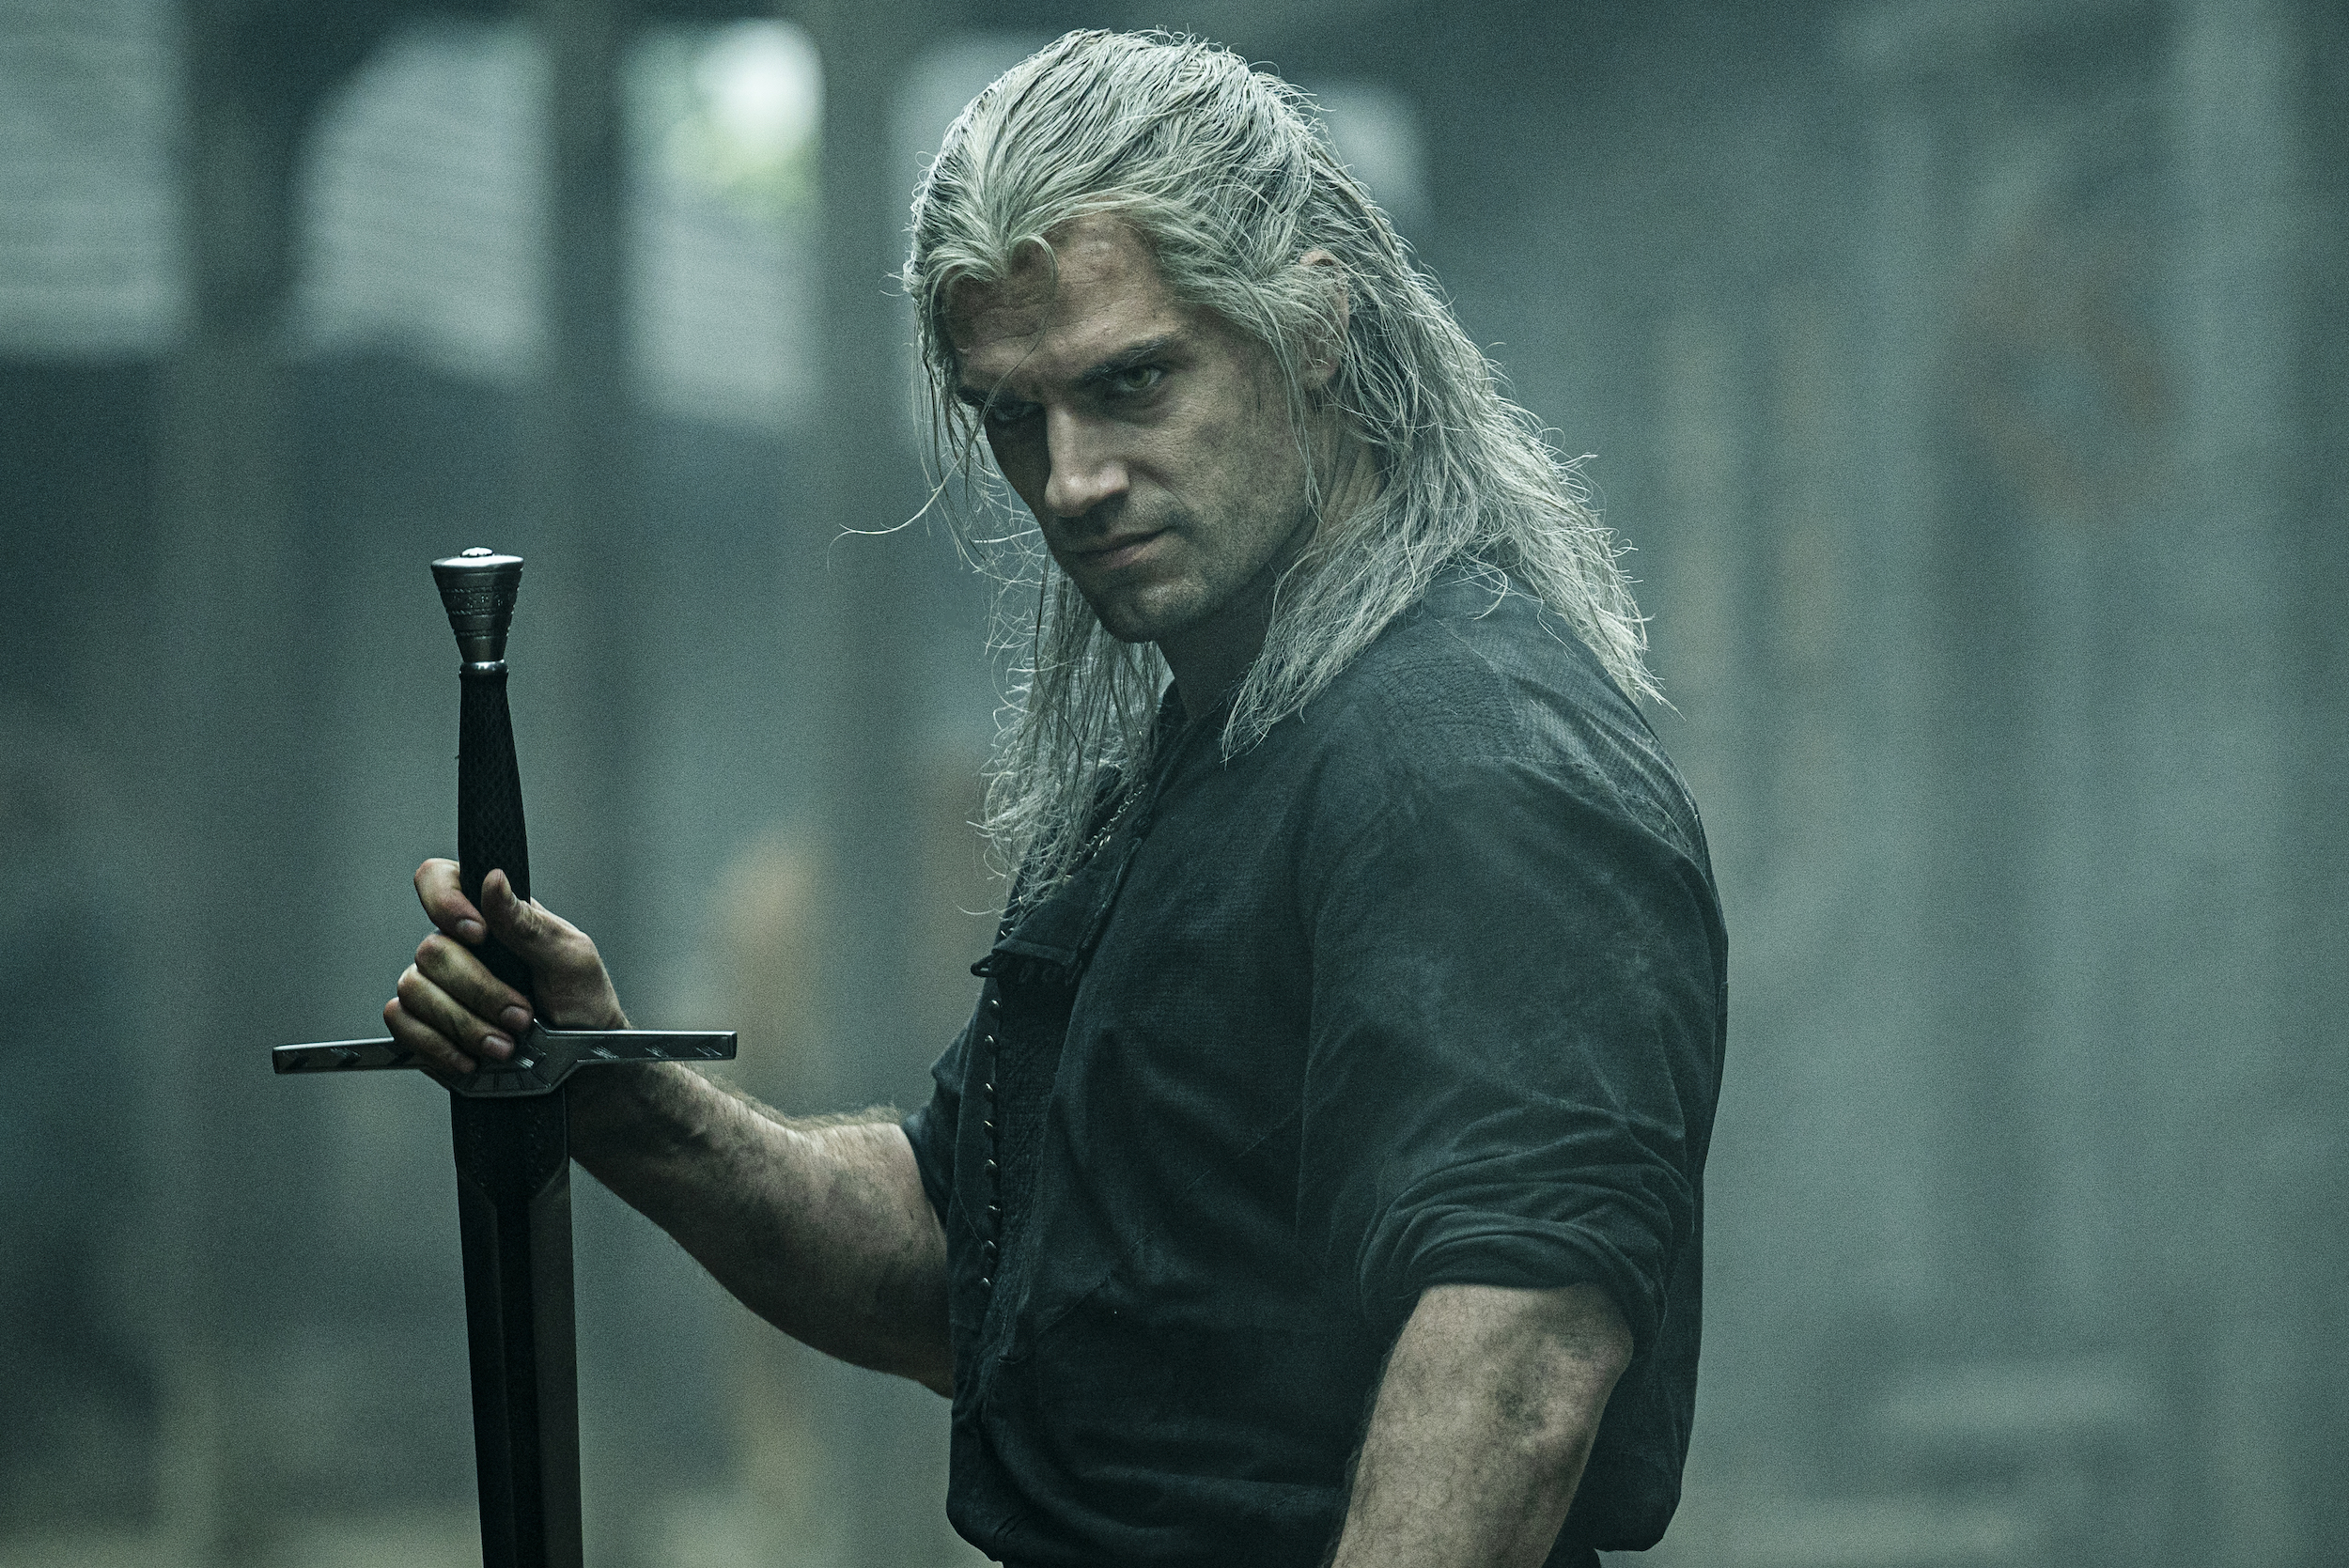 The Witcher holds his sword